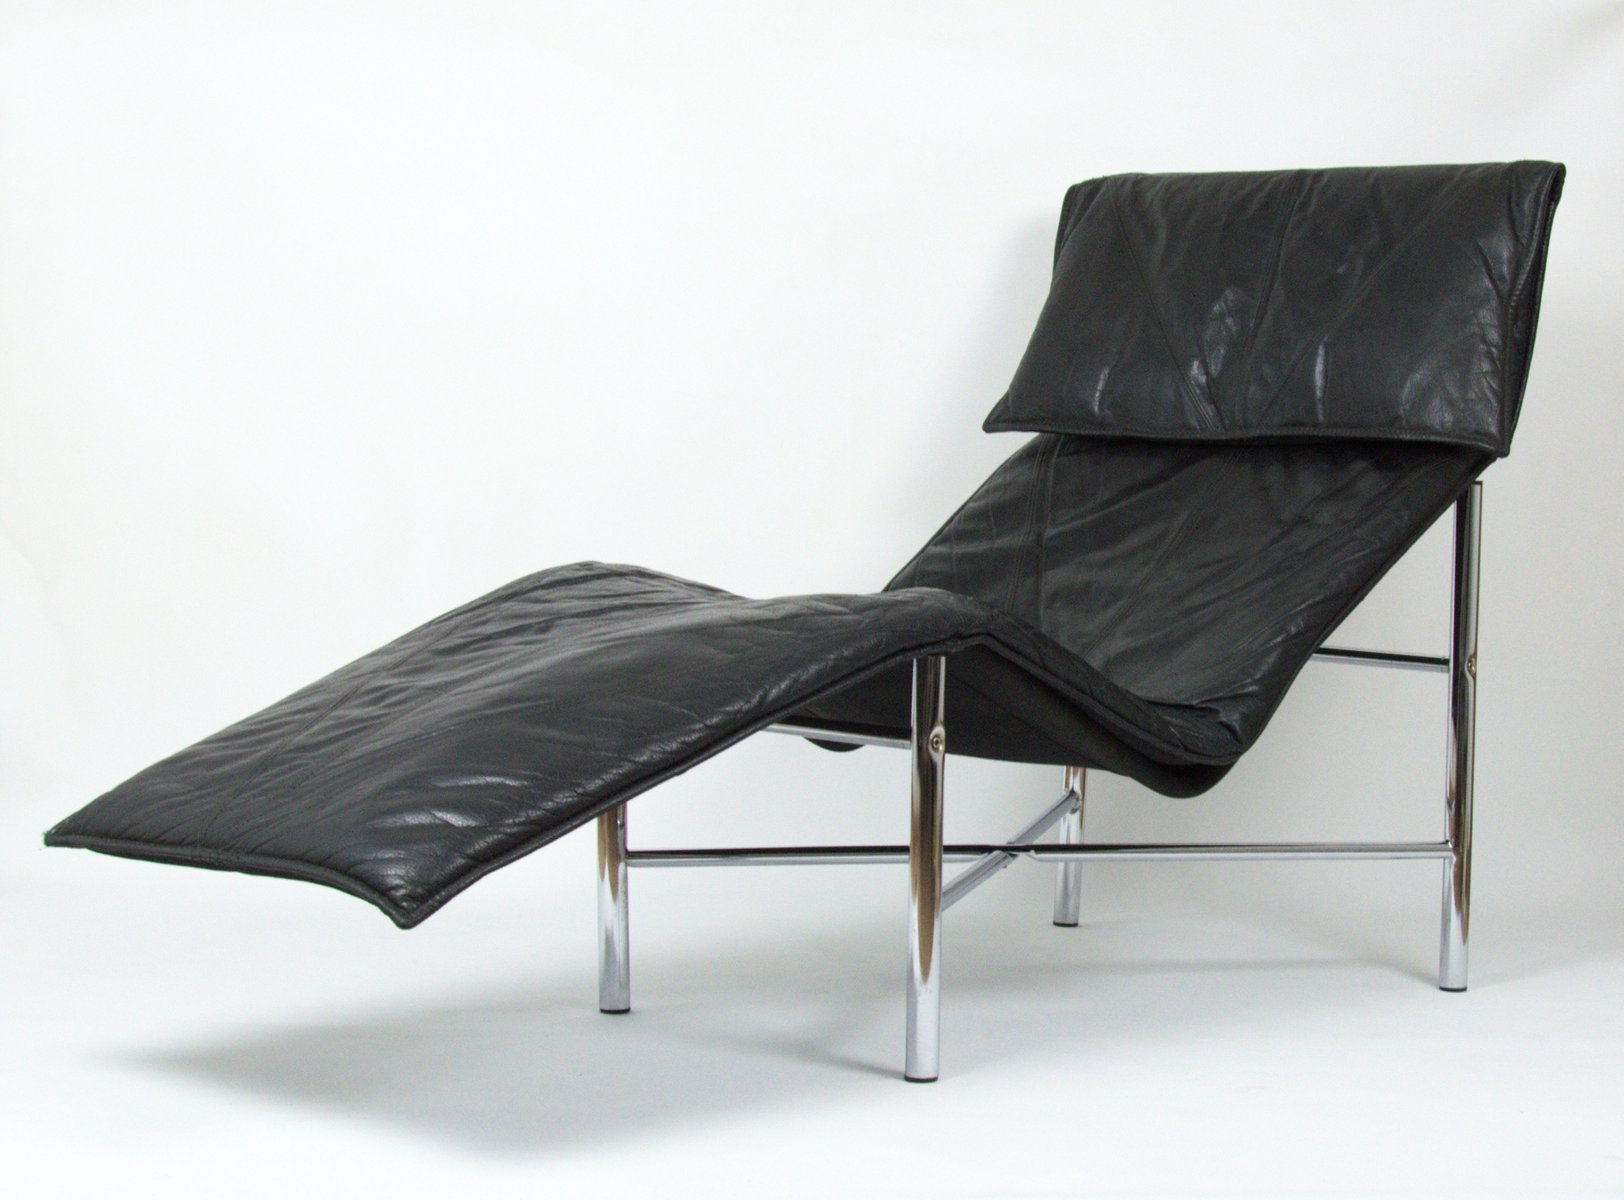 Vintage Ikea Lounge Chair Vintage Black Leather Lounge Chair By Tord Björklund For